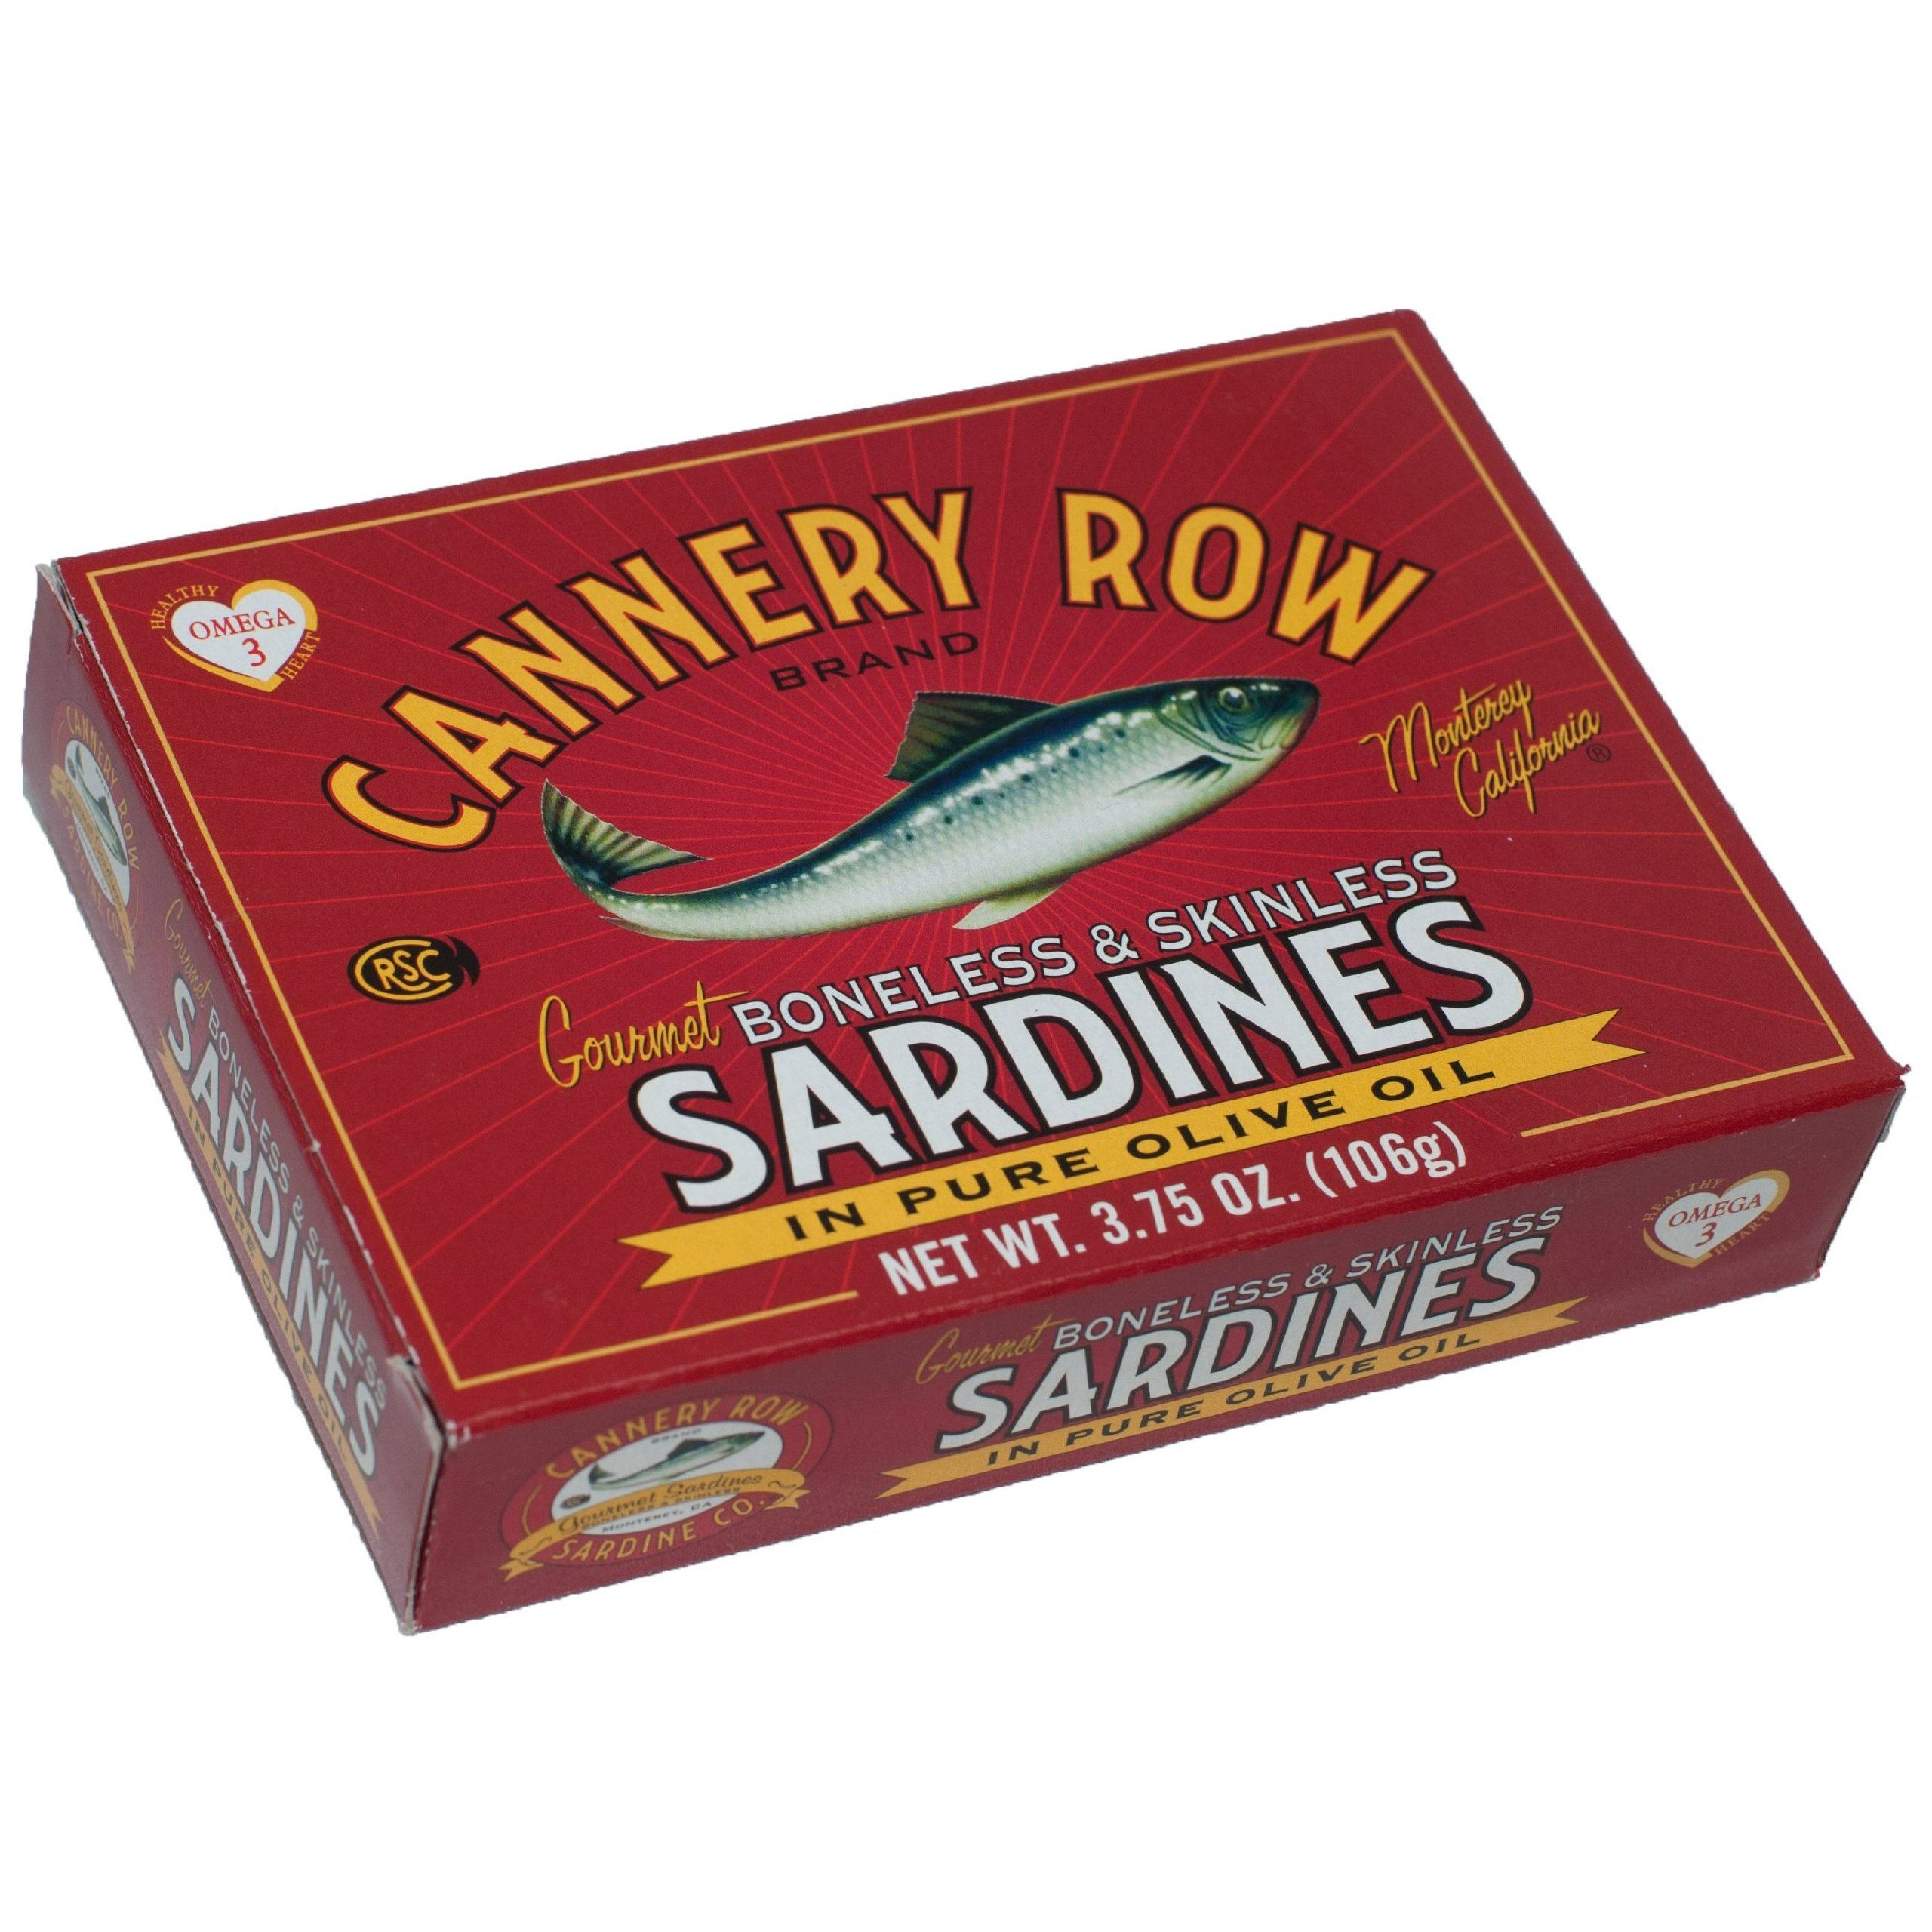 cannery row sardine co monterey ca sardine appreciation cannery row sardine co monterey ca